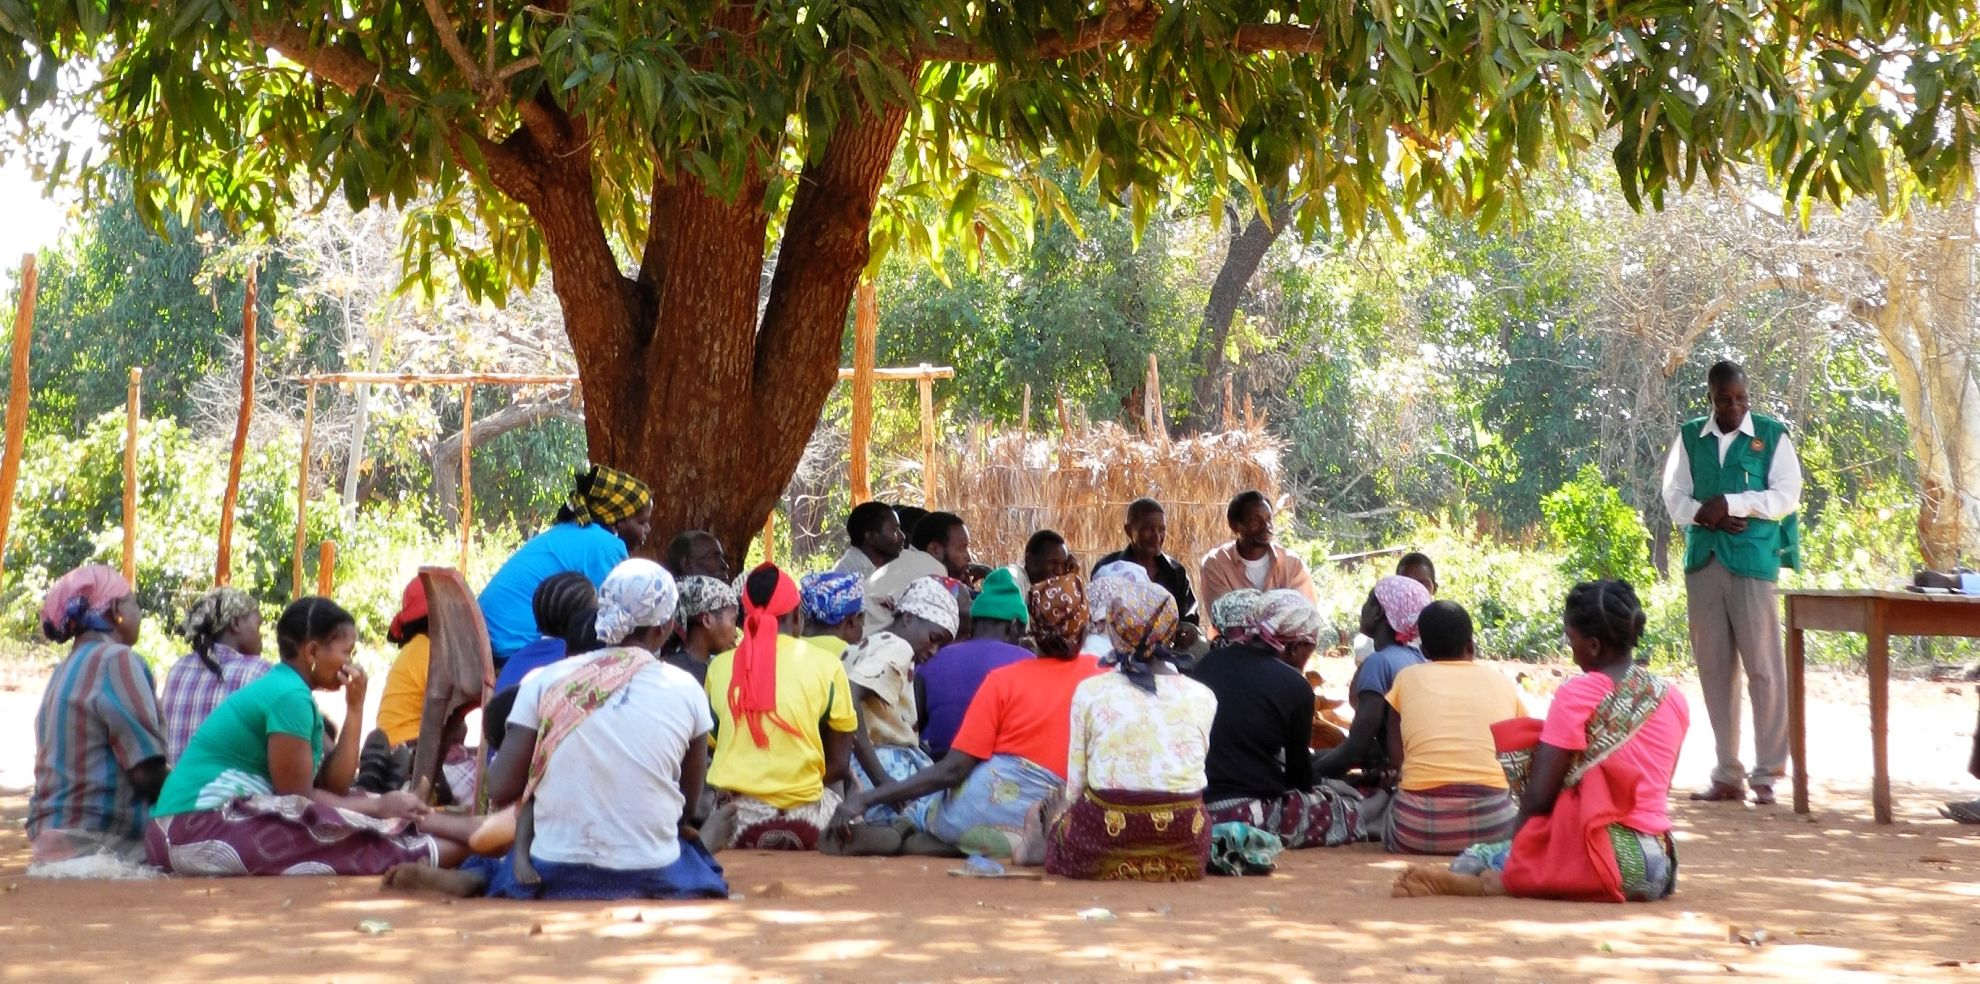 Latest News Malaria consortium receives grant for mozambique neglected tropical diseases project